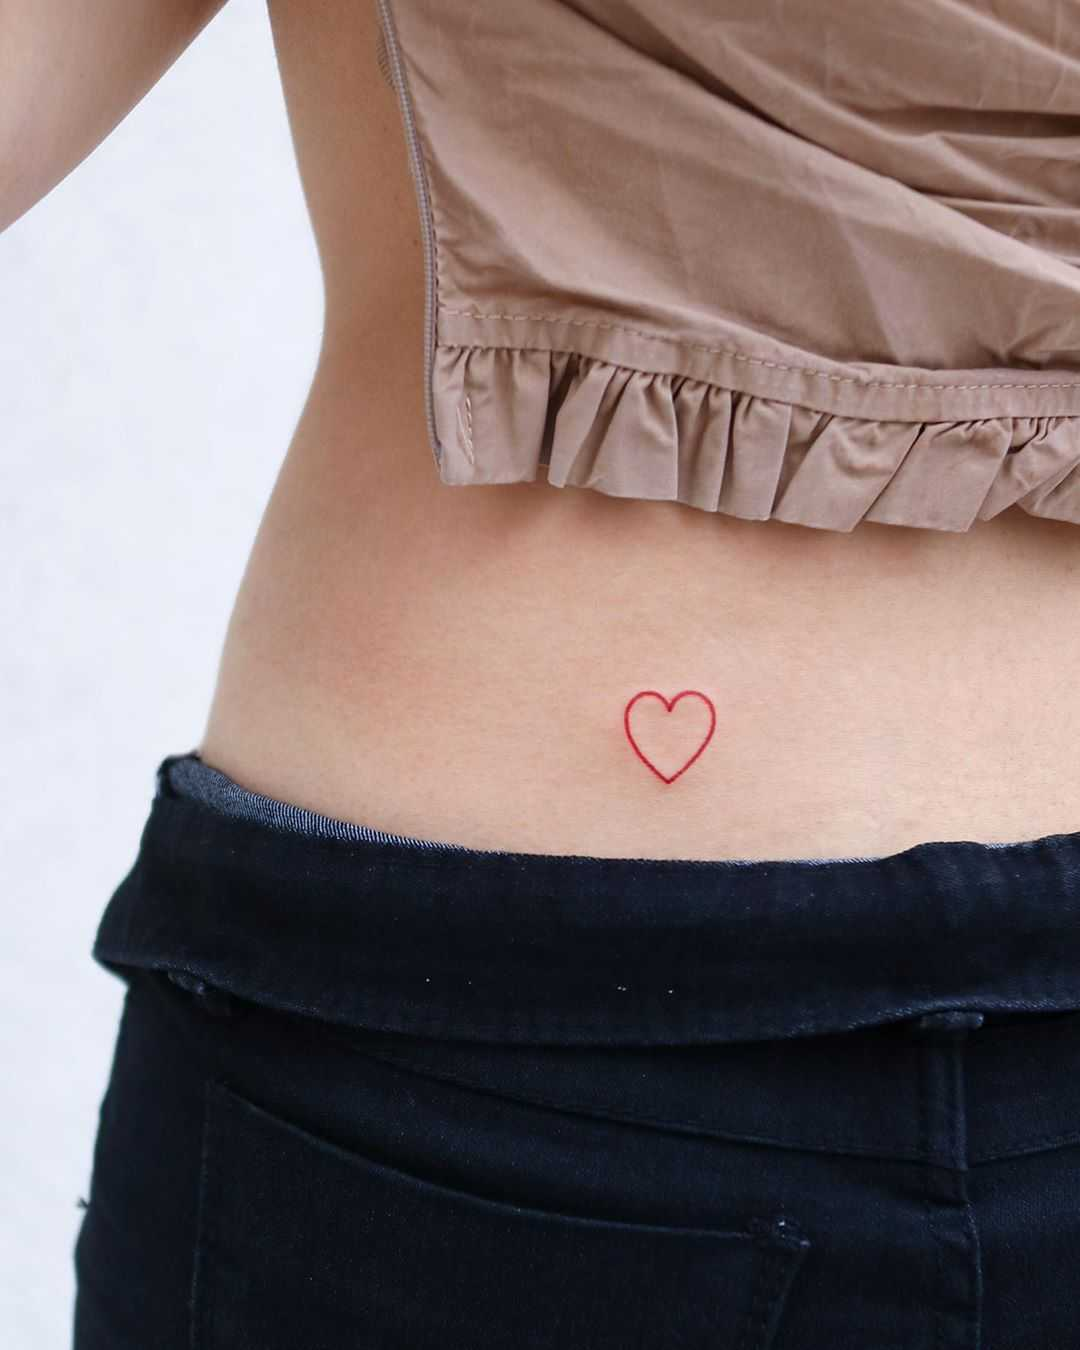 Outline red heart by tattooist Nemo